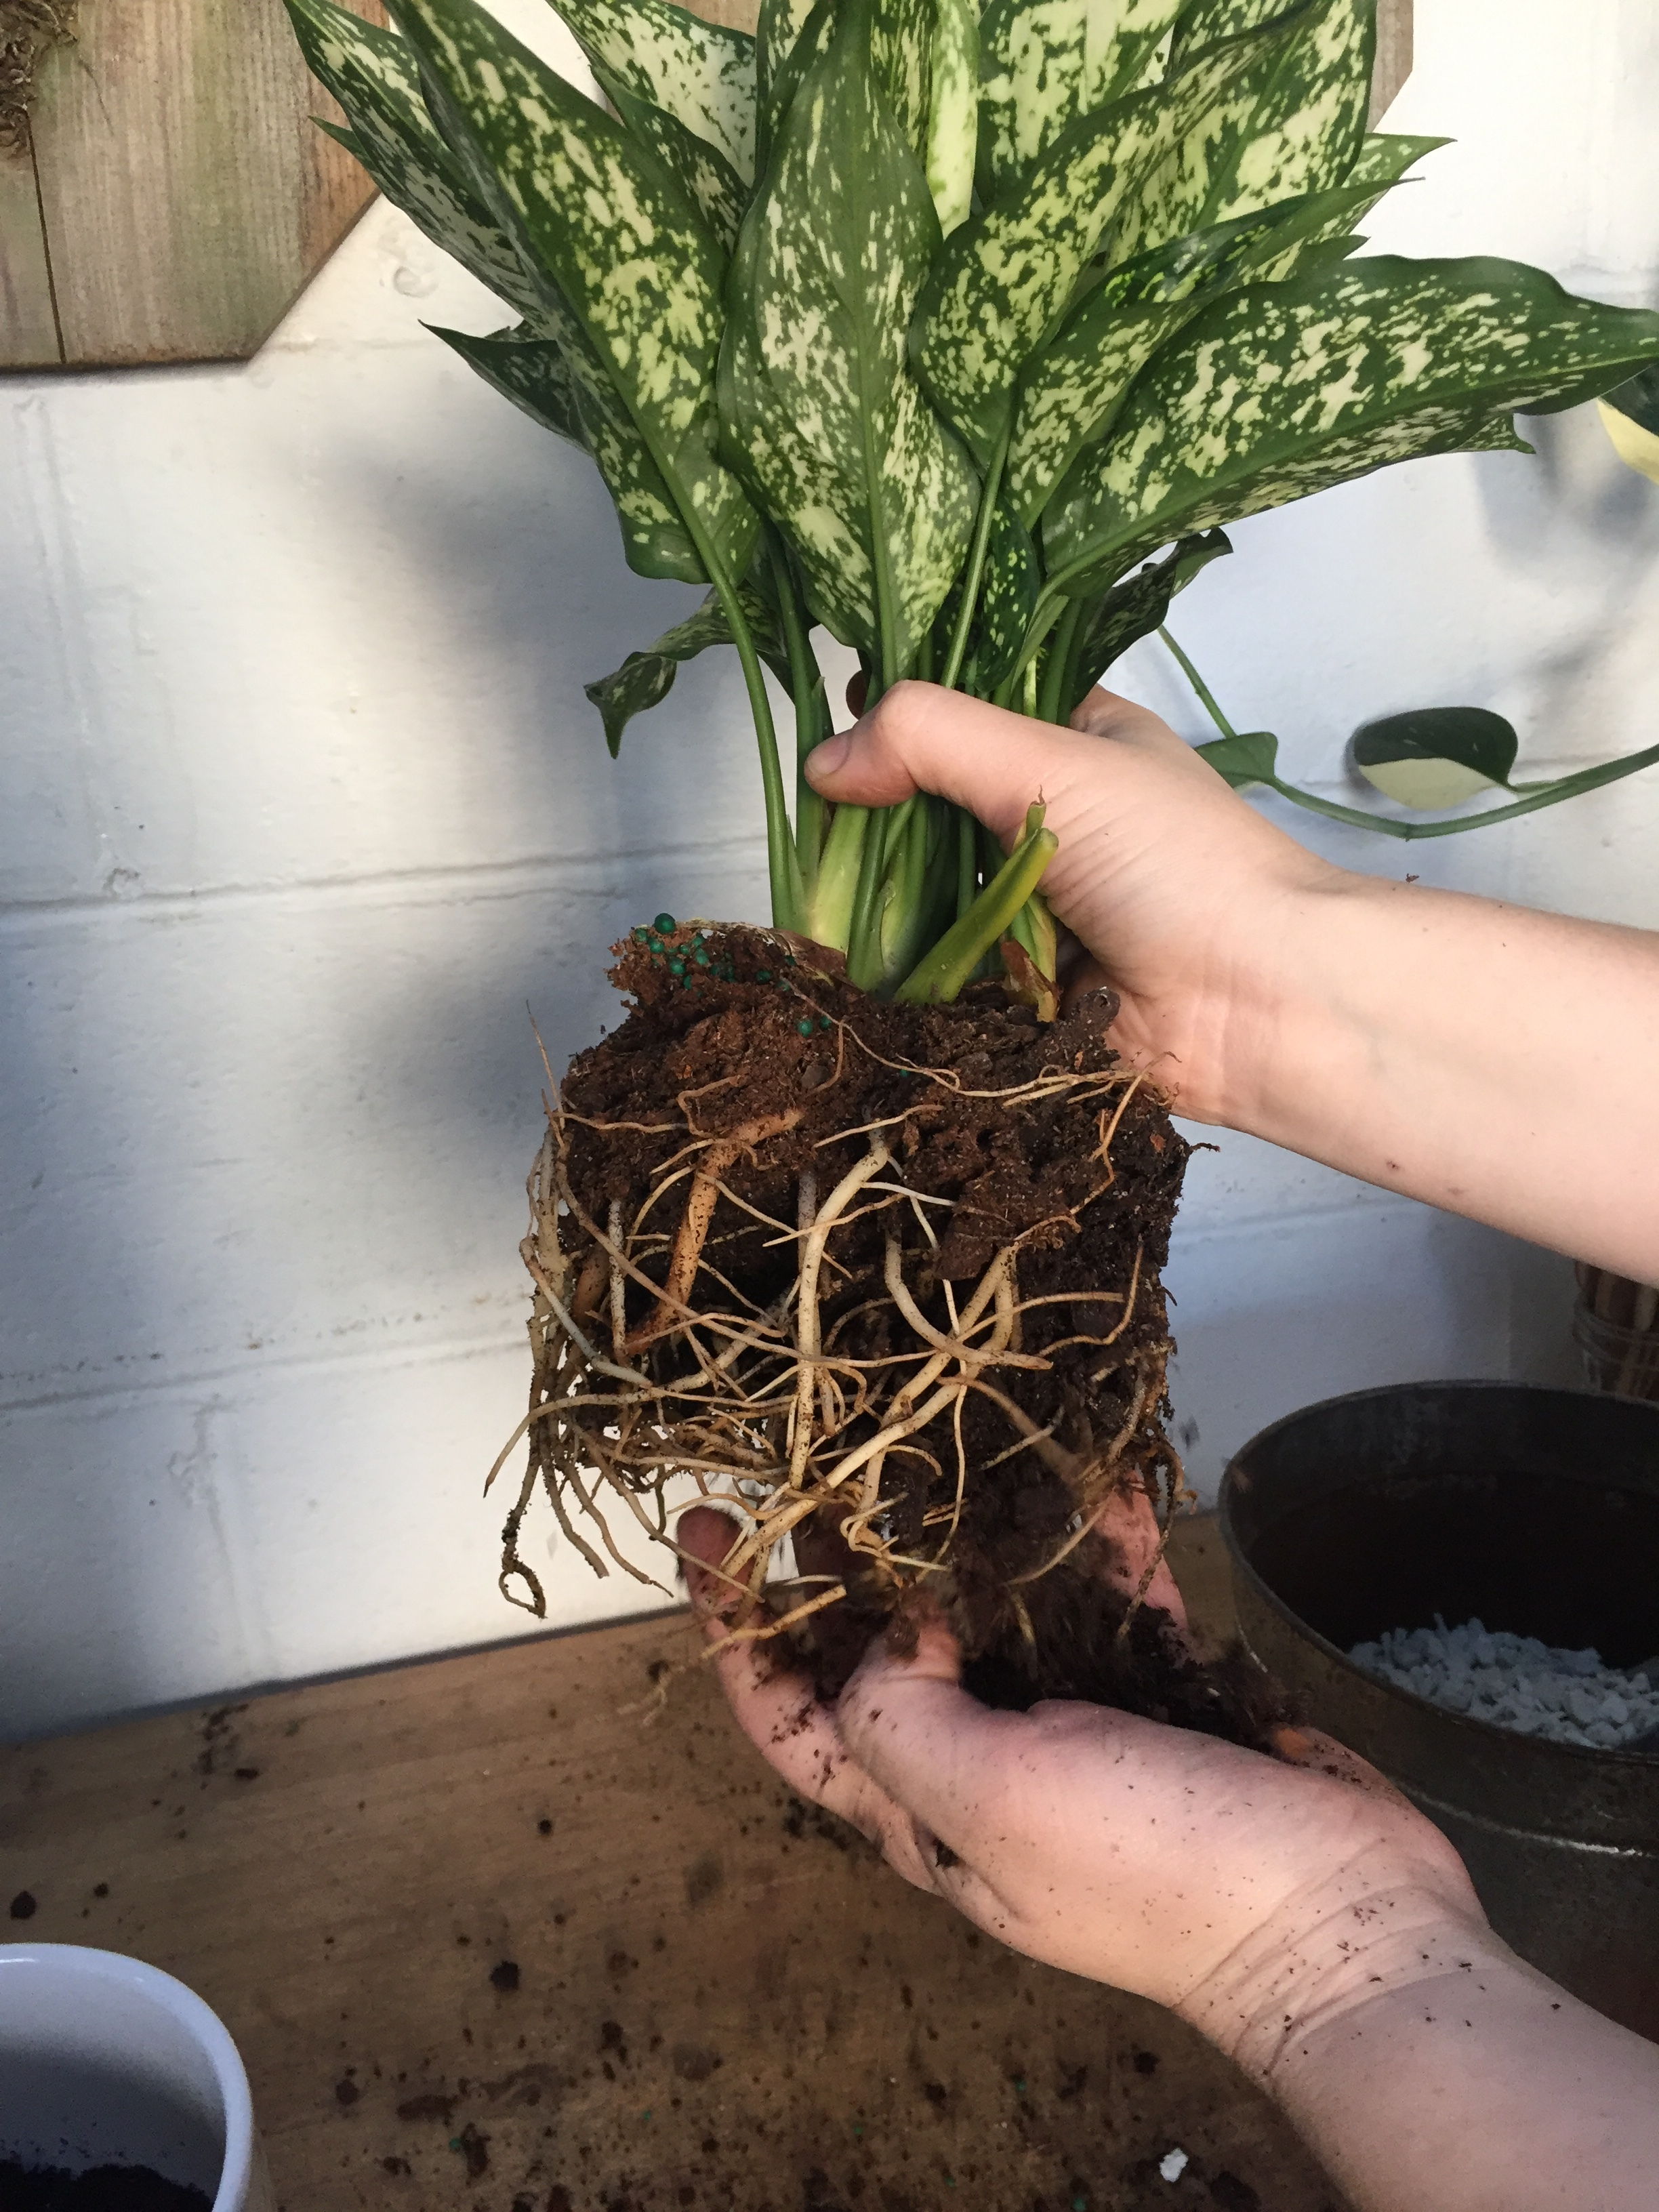 This Aglaonema 'Spring Snow' definitely needs more room. You can see a ton of roots that were pressed up against its previous pot without brushing any soil away.